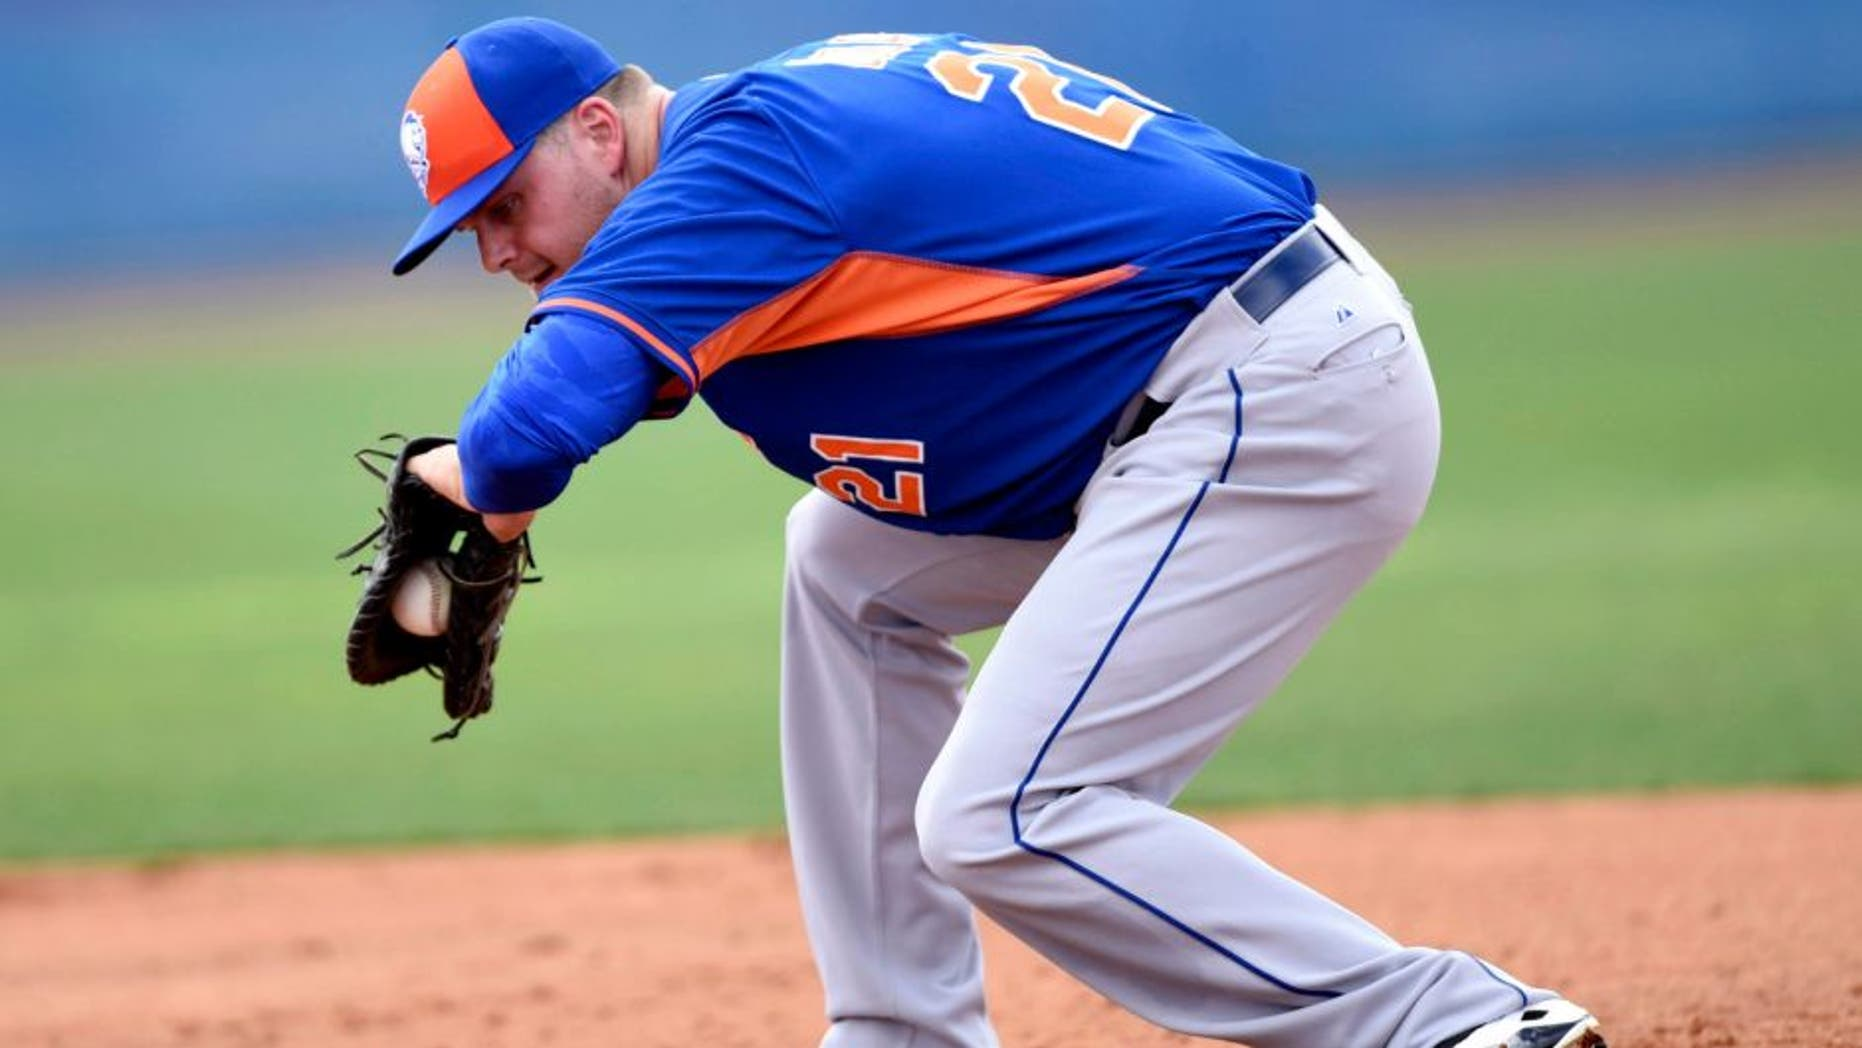 Feb 23, 2015; Port St. Lucie, FL, USA; New York Mets first baseman Lucas Duda (21) fields a ground ball during spring training at Tradition Field. Mandatory Credit: Brad Barr-USA TODAY Sports